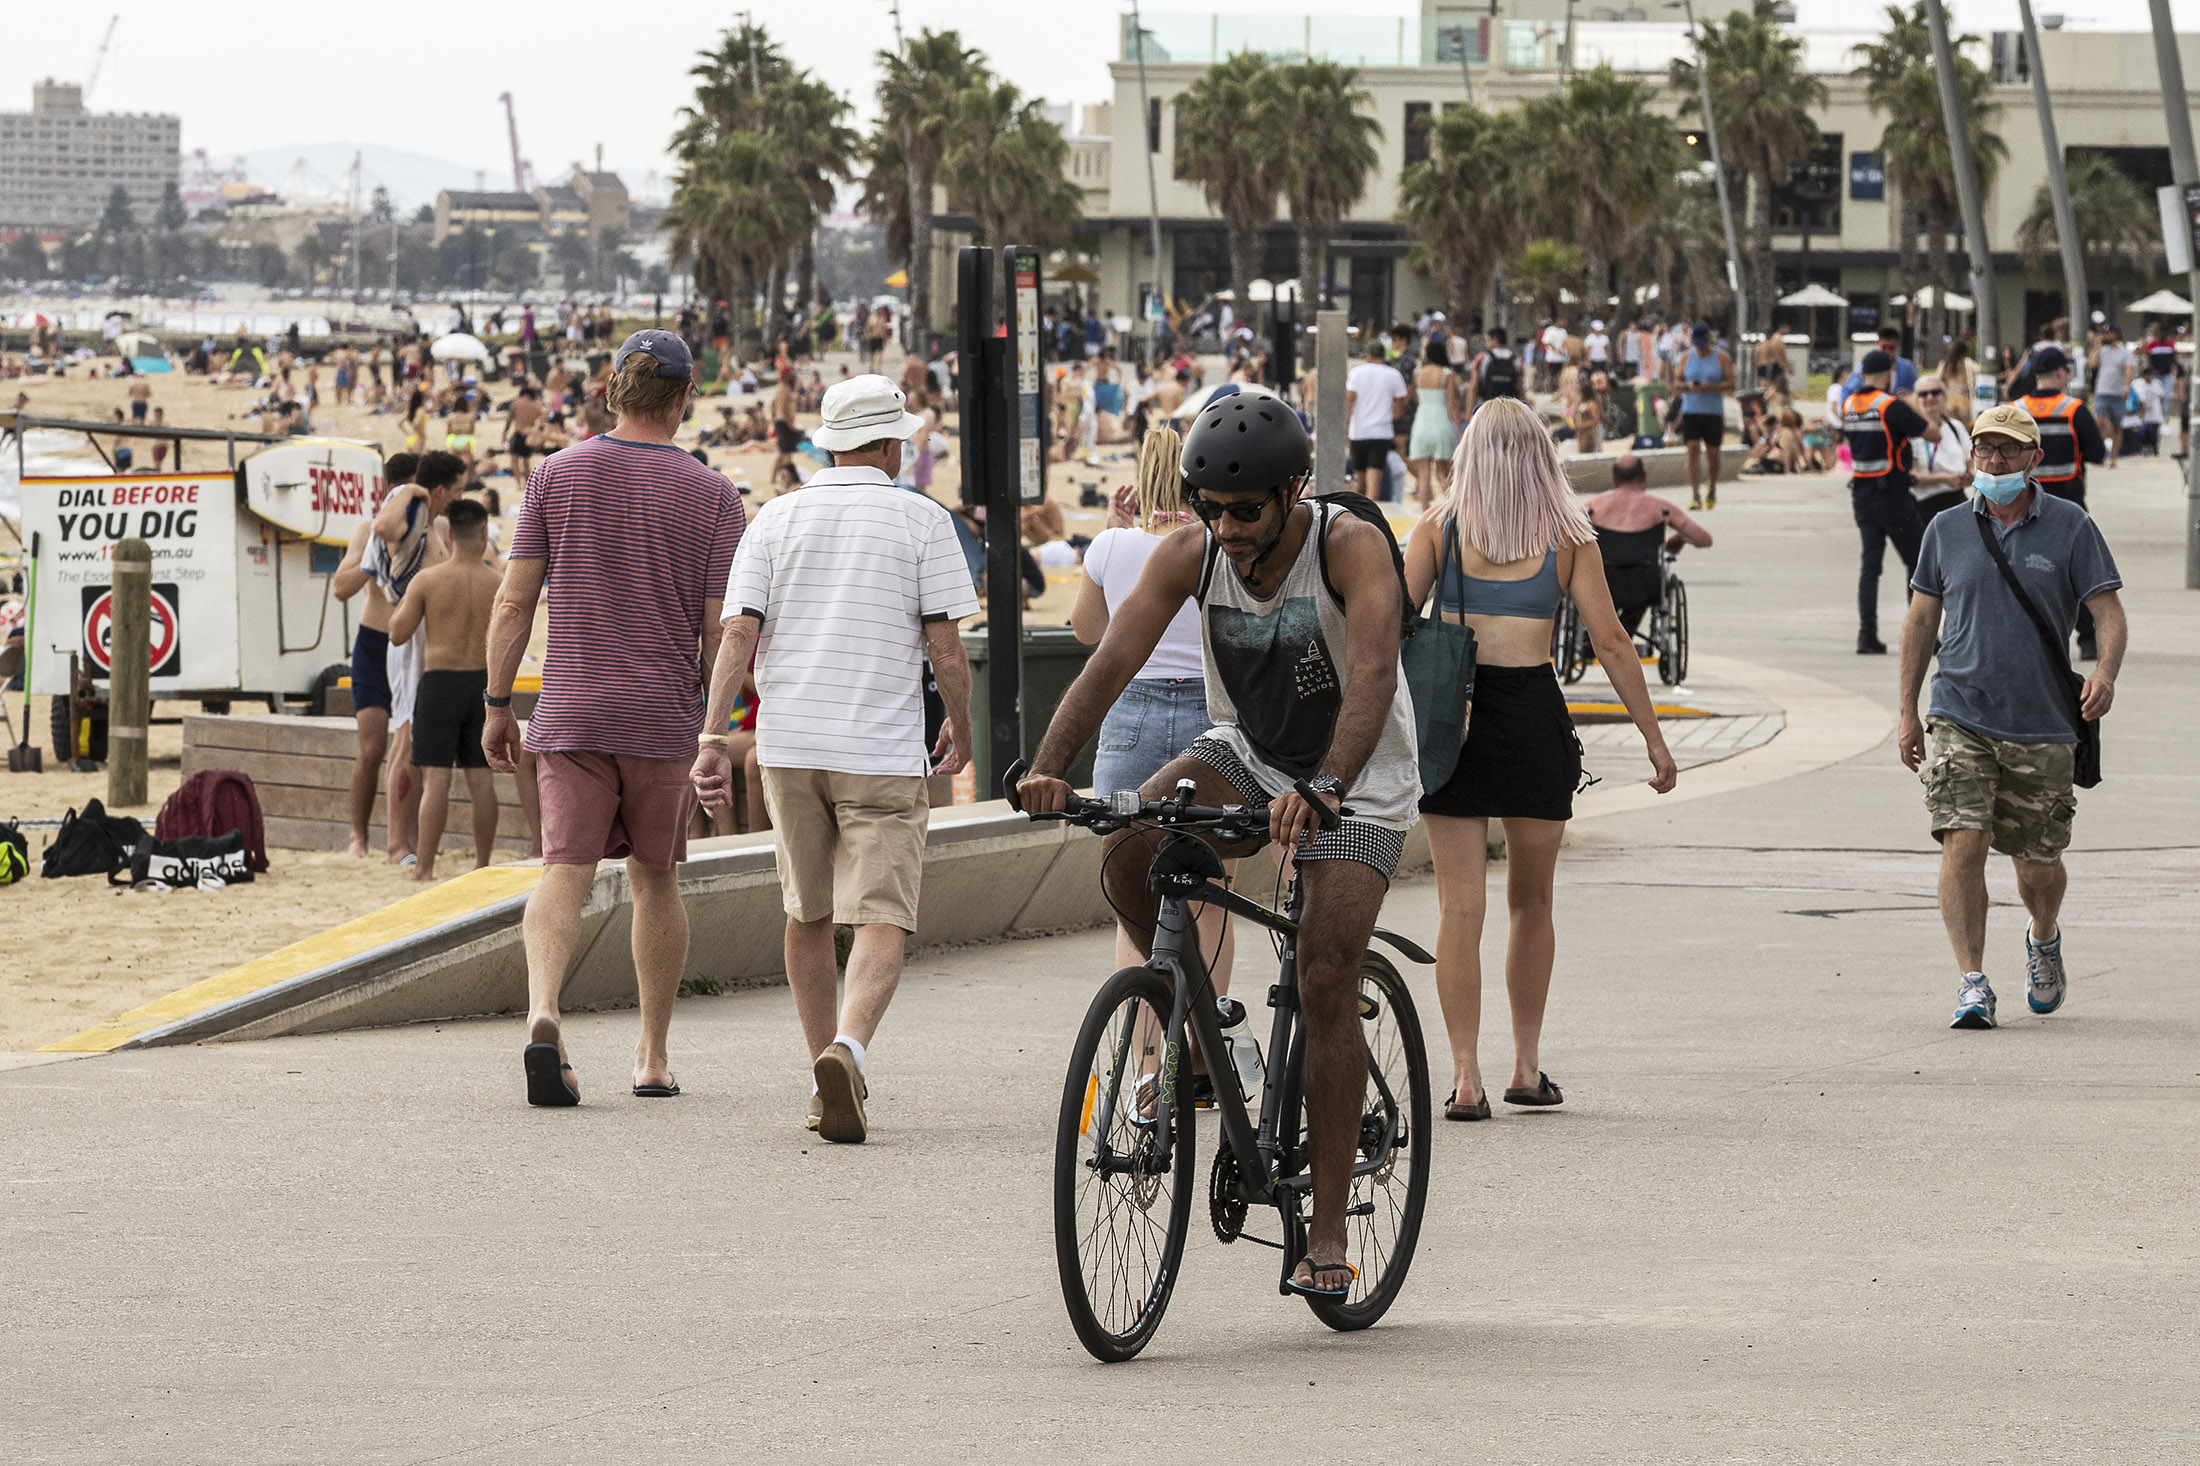 People enjoy the weather at St. Kilda beach on Nov. 27, in Melbourne, Australia.